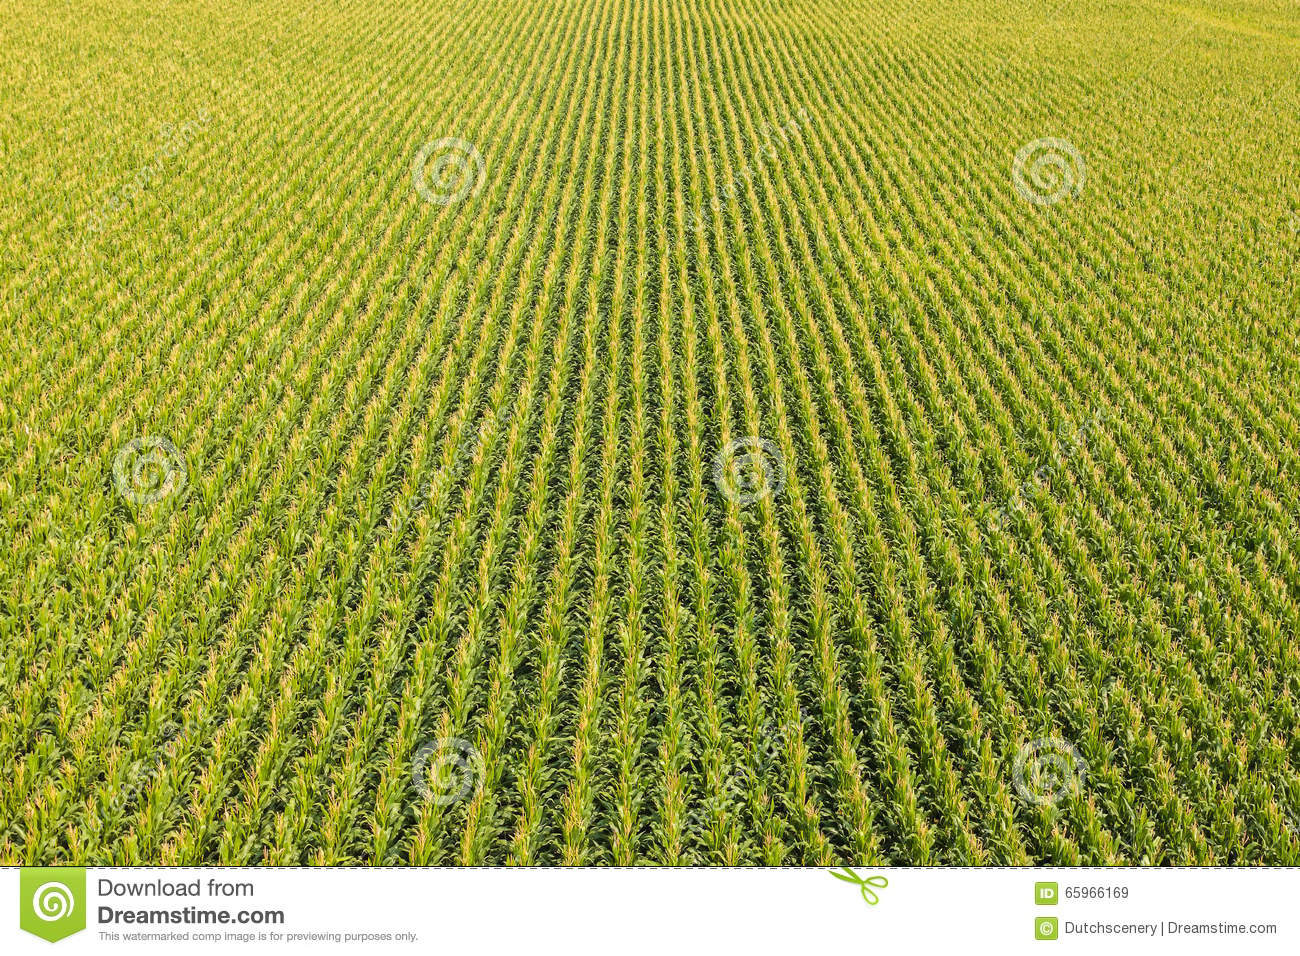 Field With Rows Of Corn Plants Stock Photo - Image: 65966169